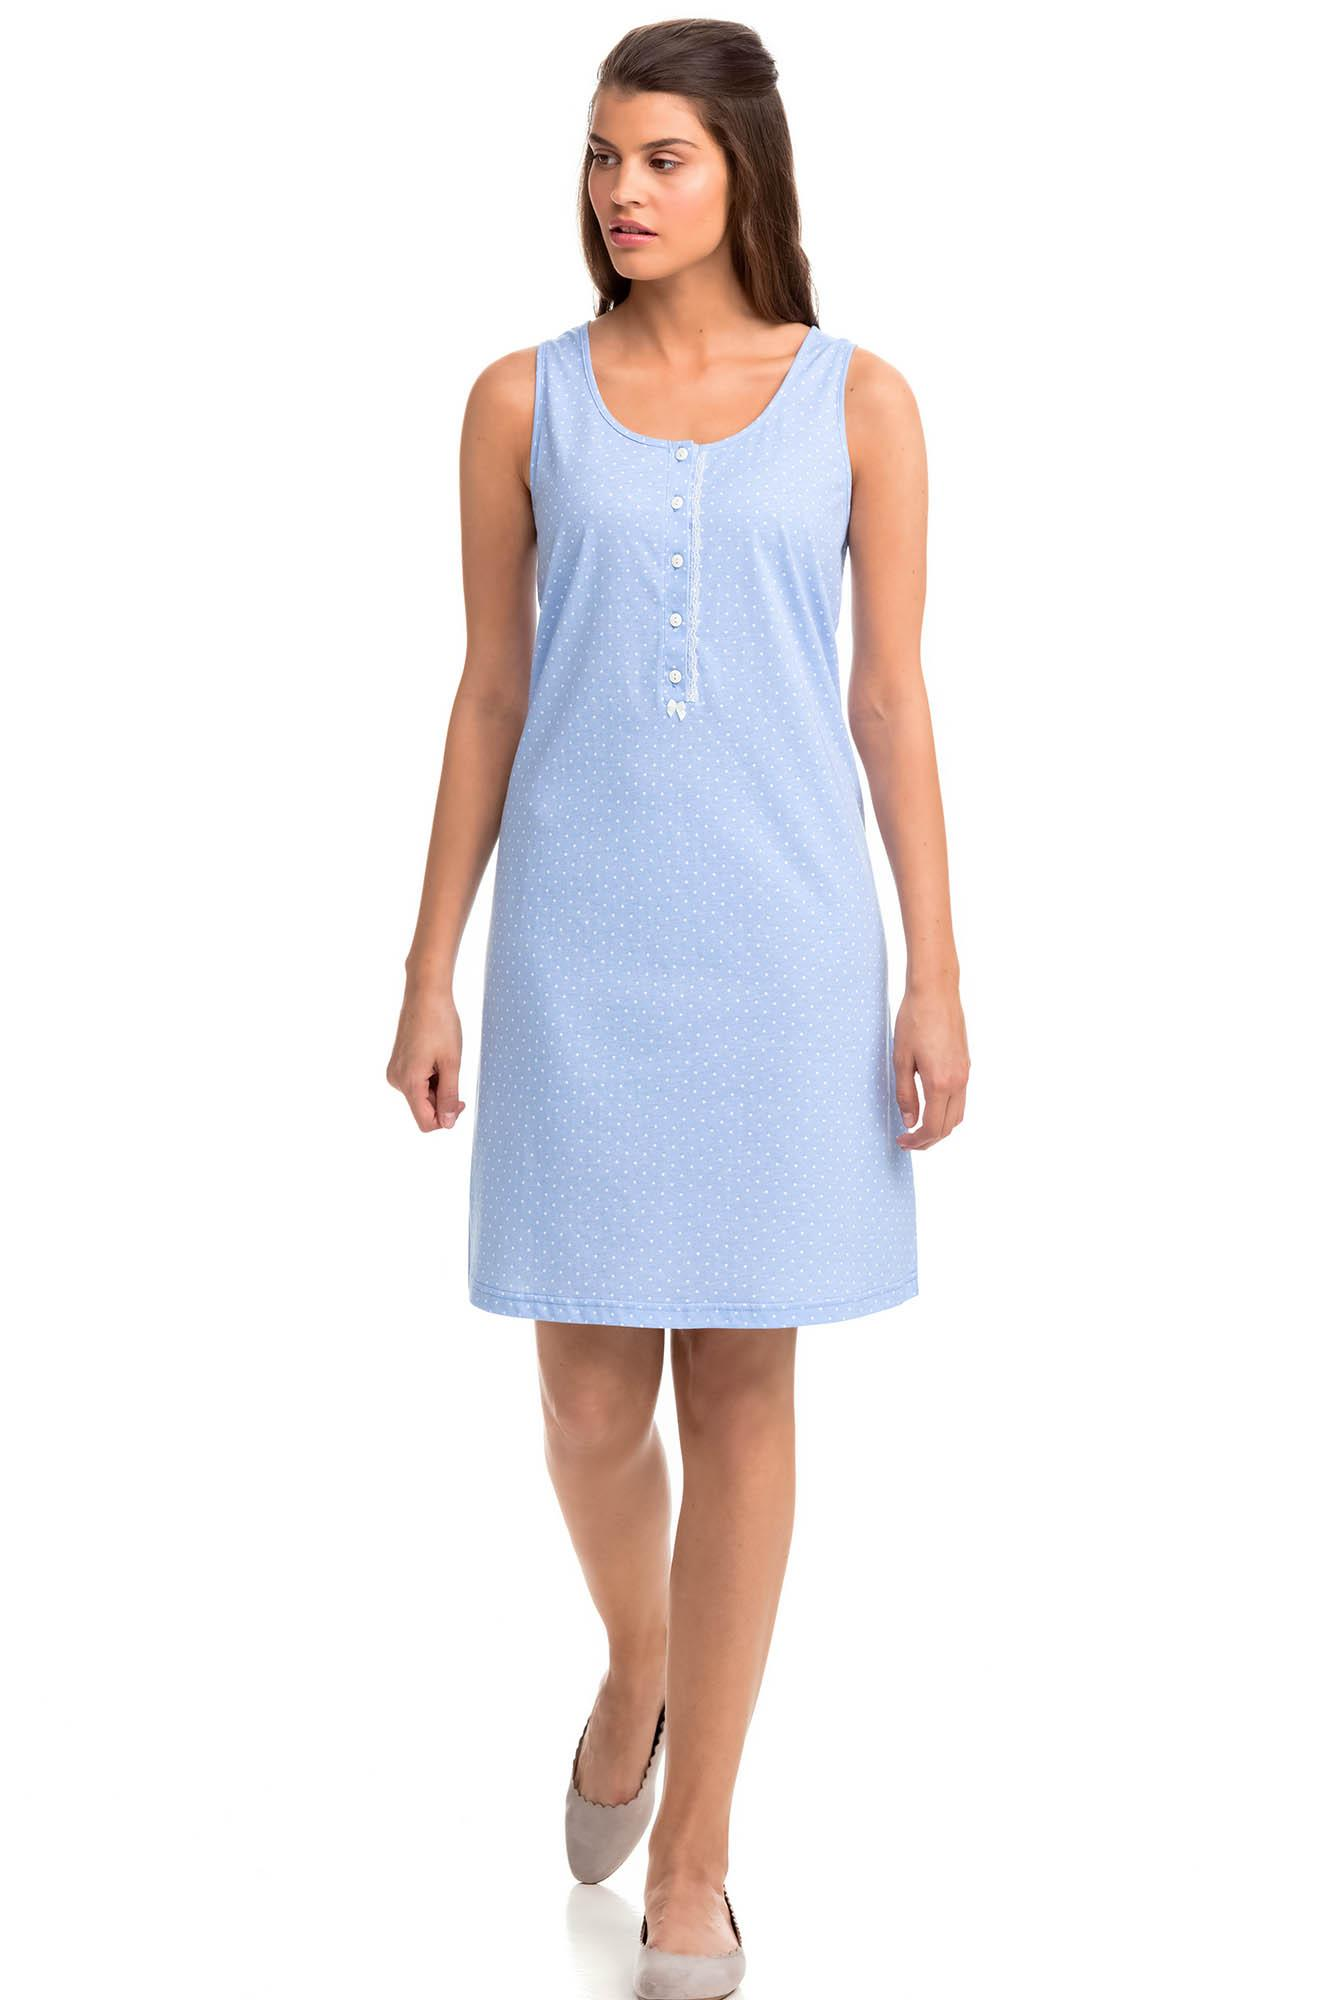 Sleeveless Polka Dot Nightgown with Buttons